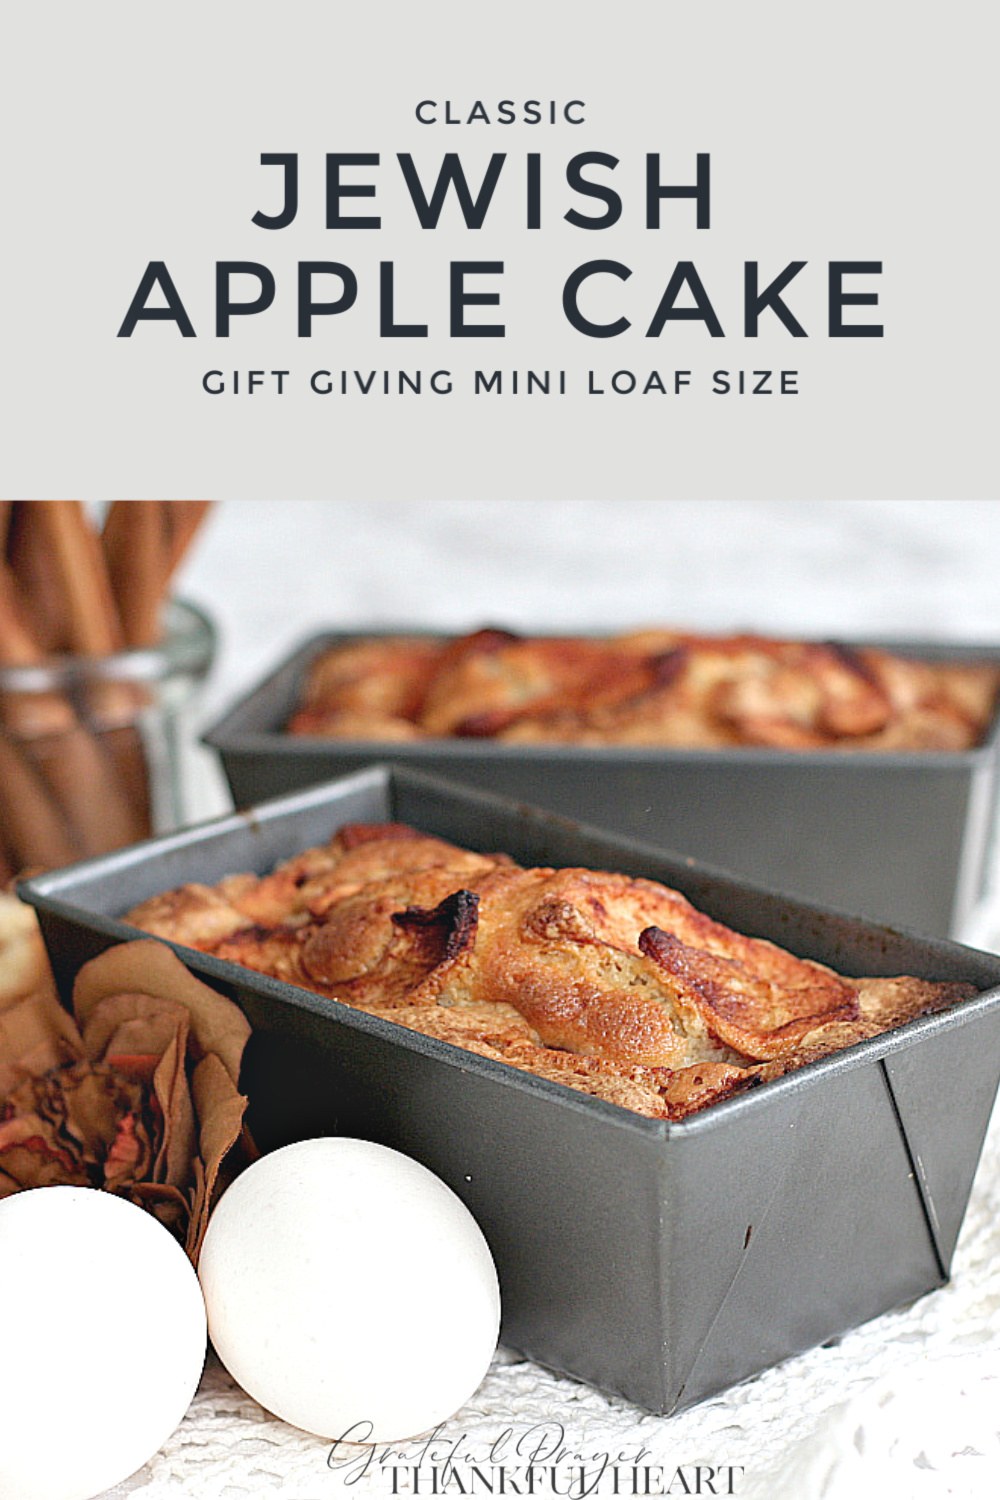 Incredibly delicious and moist, classic Jewish apple cake from mom's vintage recipe. Baked in a tube or Bundt pan and filled with the wonderful autumn flavors of apple and cinnamon. Lovely gift from the kitchen.